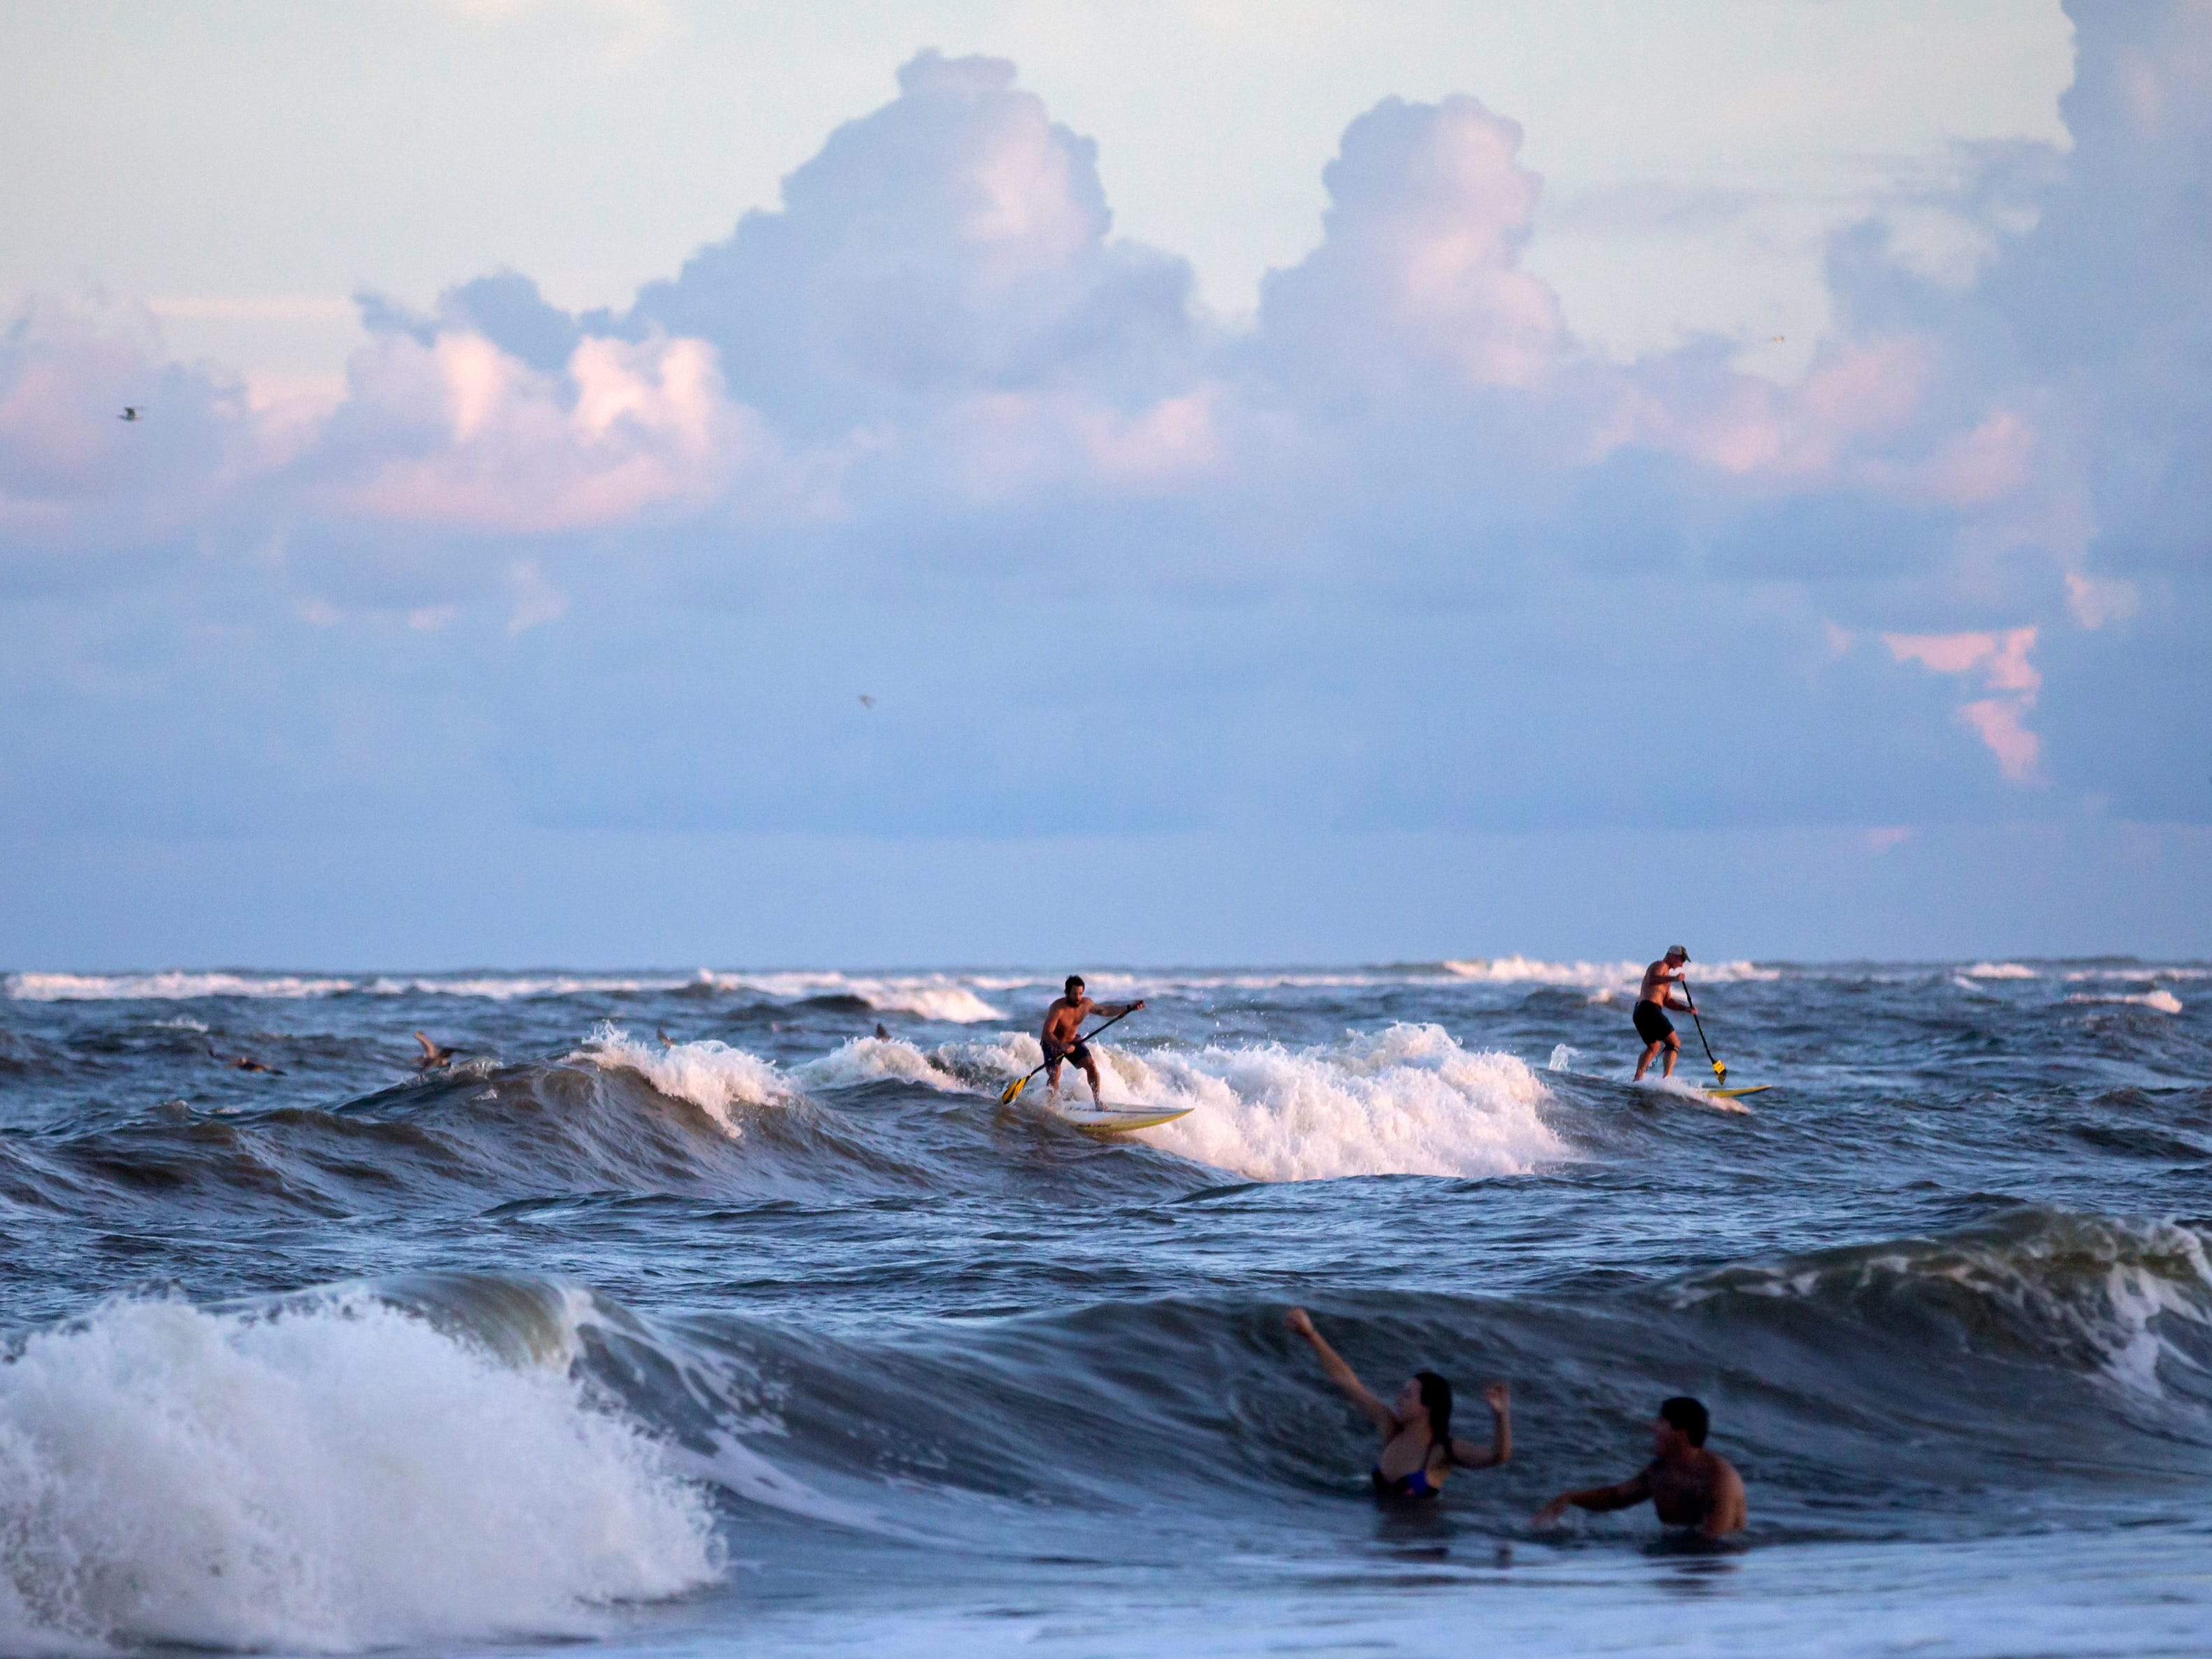 Stand-up paddle surfer Travis Storey, center, rides a wave from the approaching Hurricane Florence, Wednesday, Sept., 12, 2018, on the south beach of Tybee Island, Ga. Storey said the waves have been gradually building in size as the storm draws closer to the East Coast. (AP Photo/Stephen B. Morton)